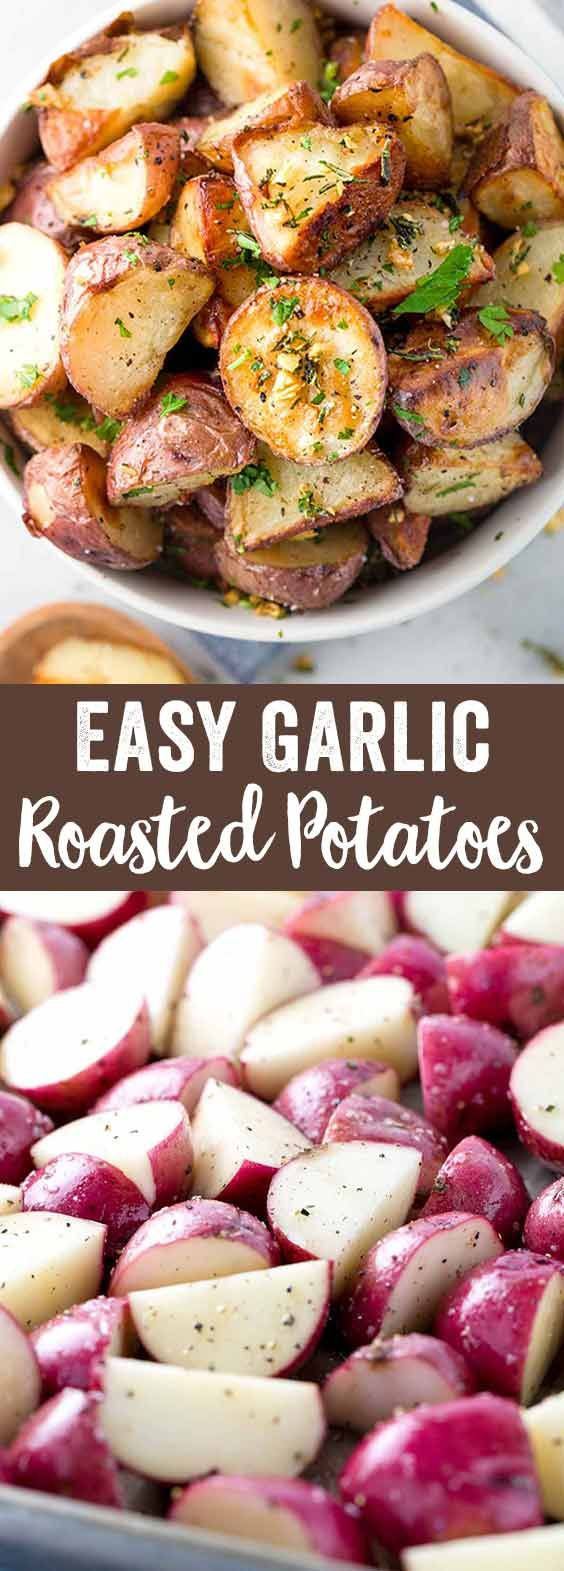 Easy side dish recipe for crispy garlic roasted potatoes cooked on a baking sheet and seasoned with rosemary and oil for extra flavor. via @foodiegavin